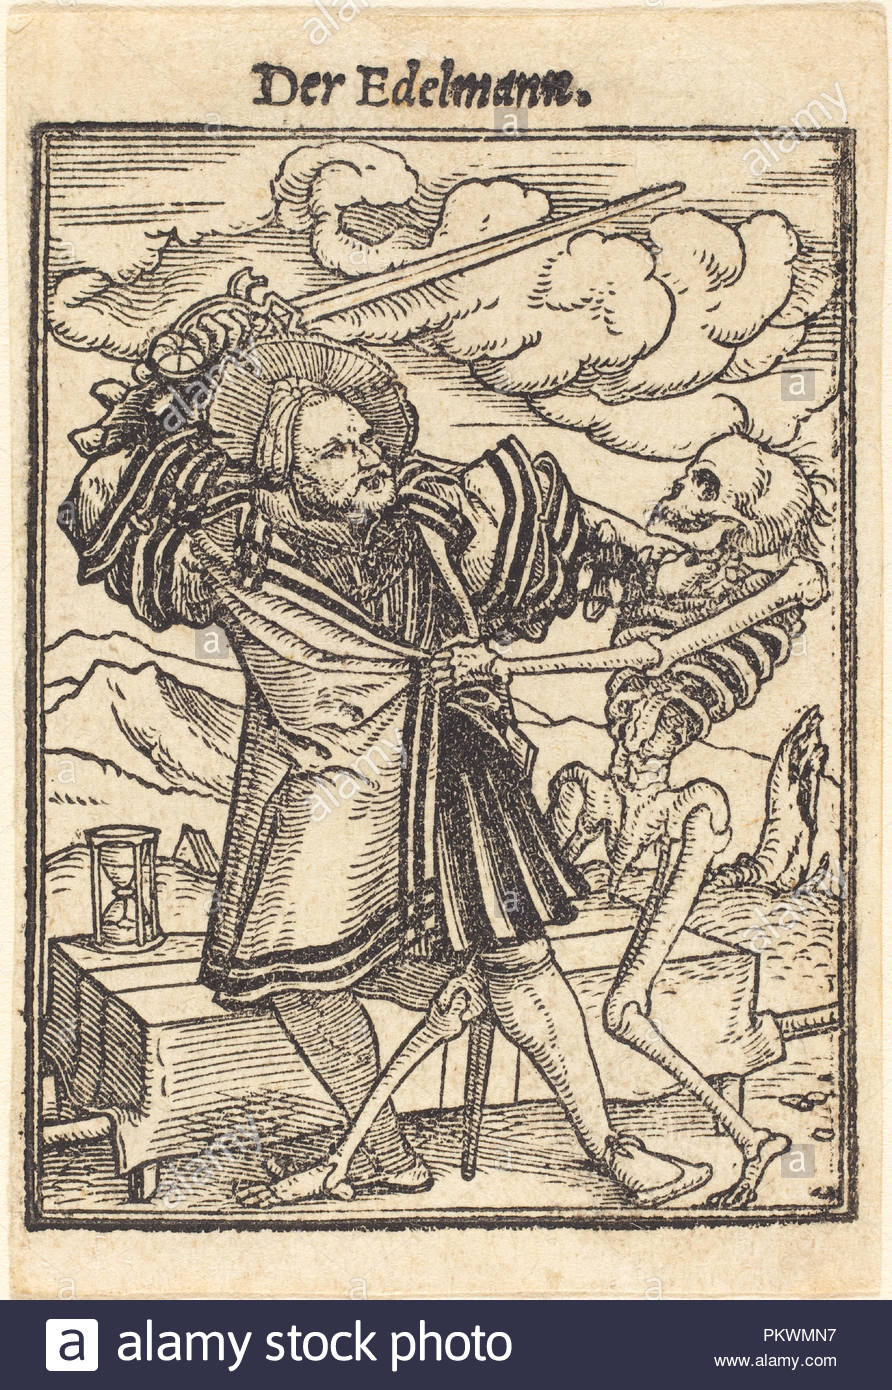 Nobleman. Medium: woodcut. Museum: National Gallery of Art, Washington DC. Author: Hans Holbein the Younger. - Stock Image